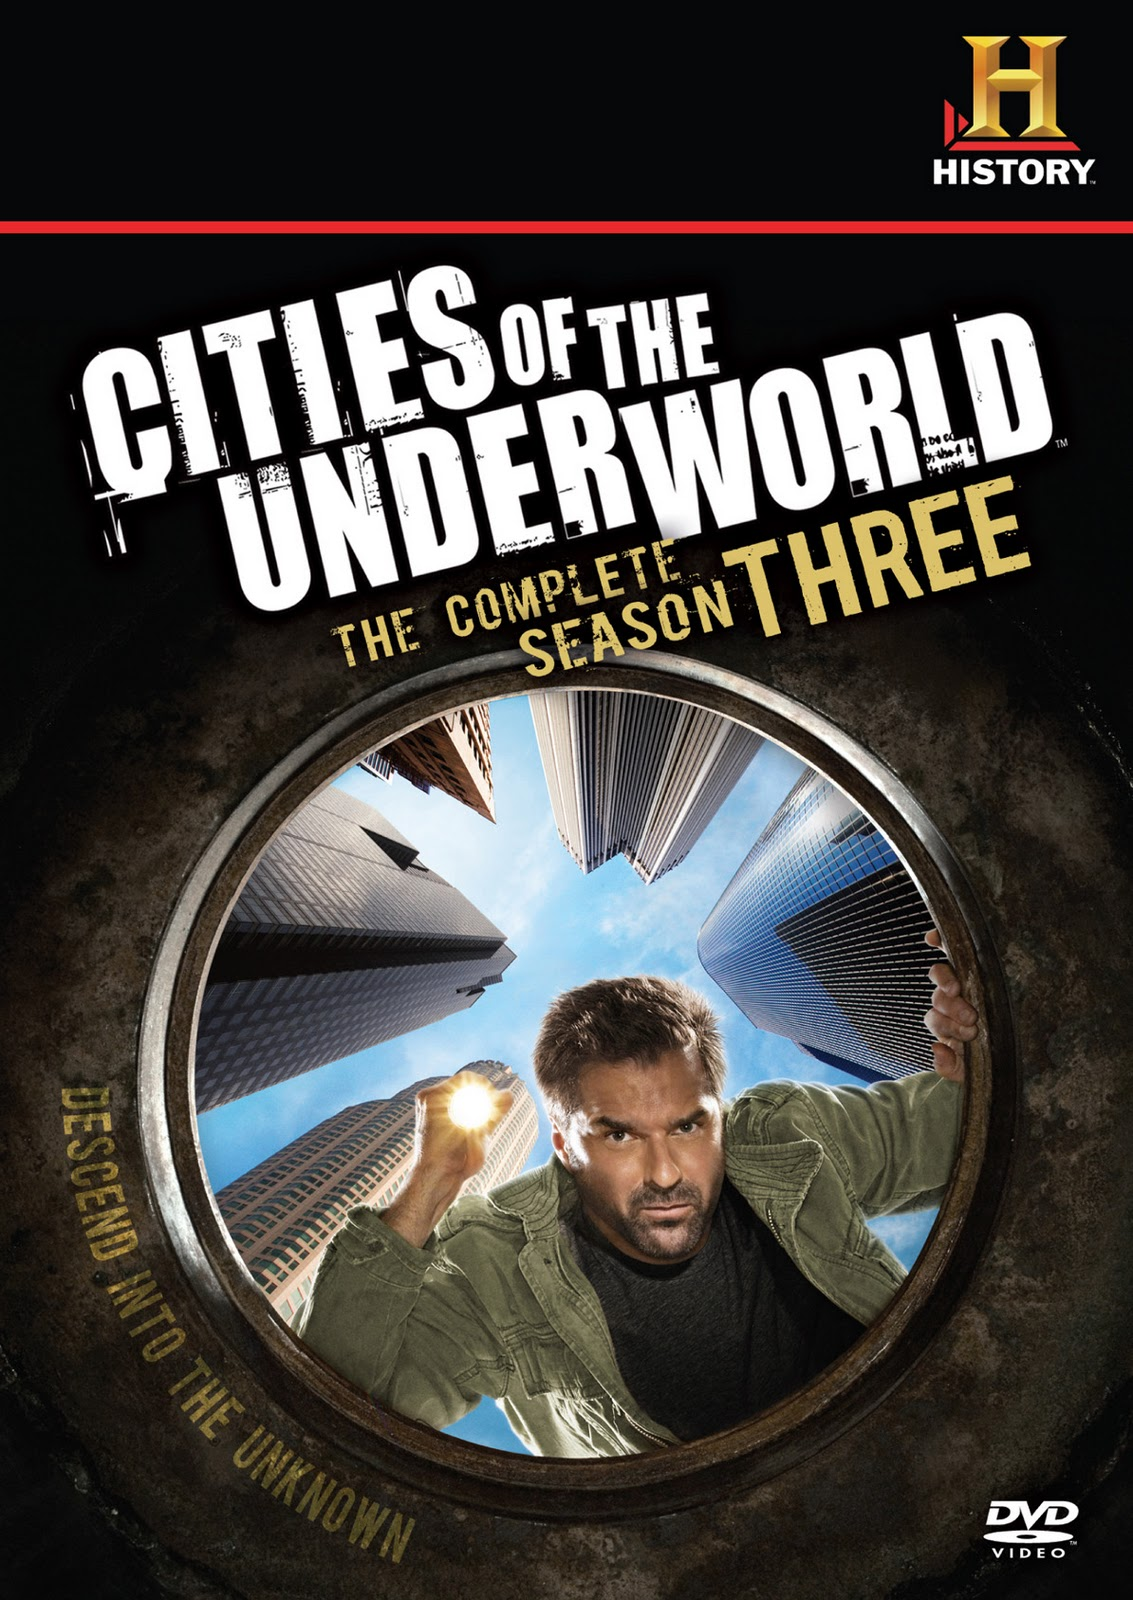 Cities of the underworld season 3 by history channel the history